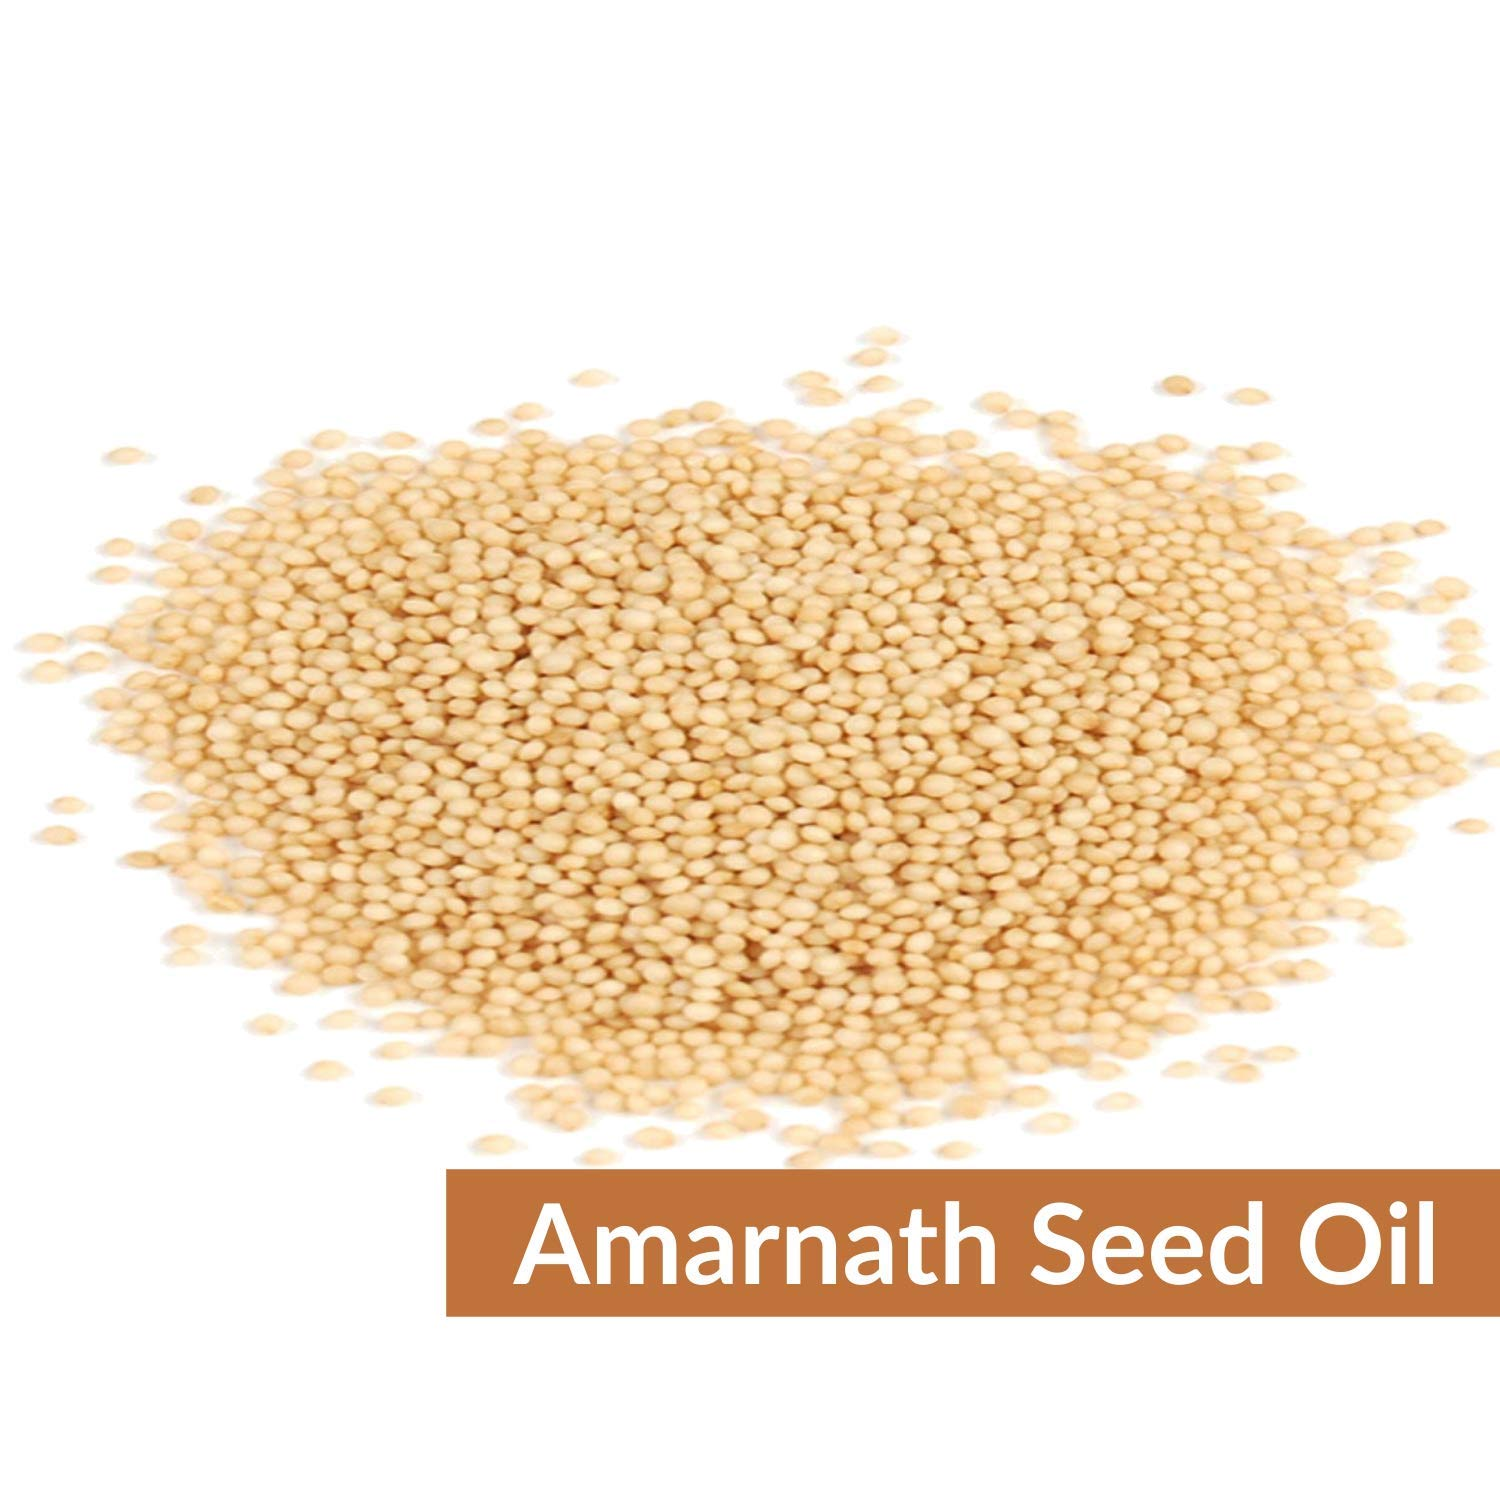 Amaranth Seed Oil (Amaranthus caudatus) 100% Natural Pure Undiluted Uncut Carrier Oil 15ml by Salvia